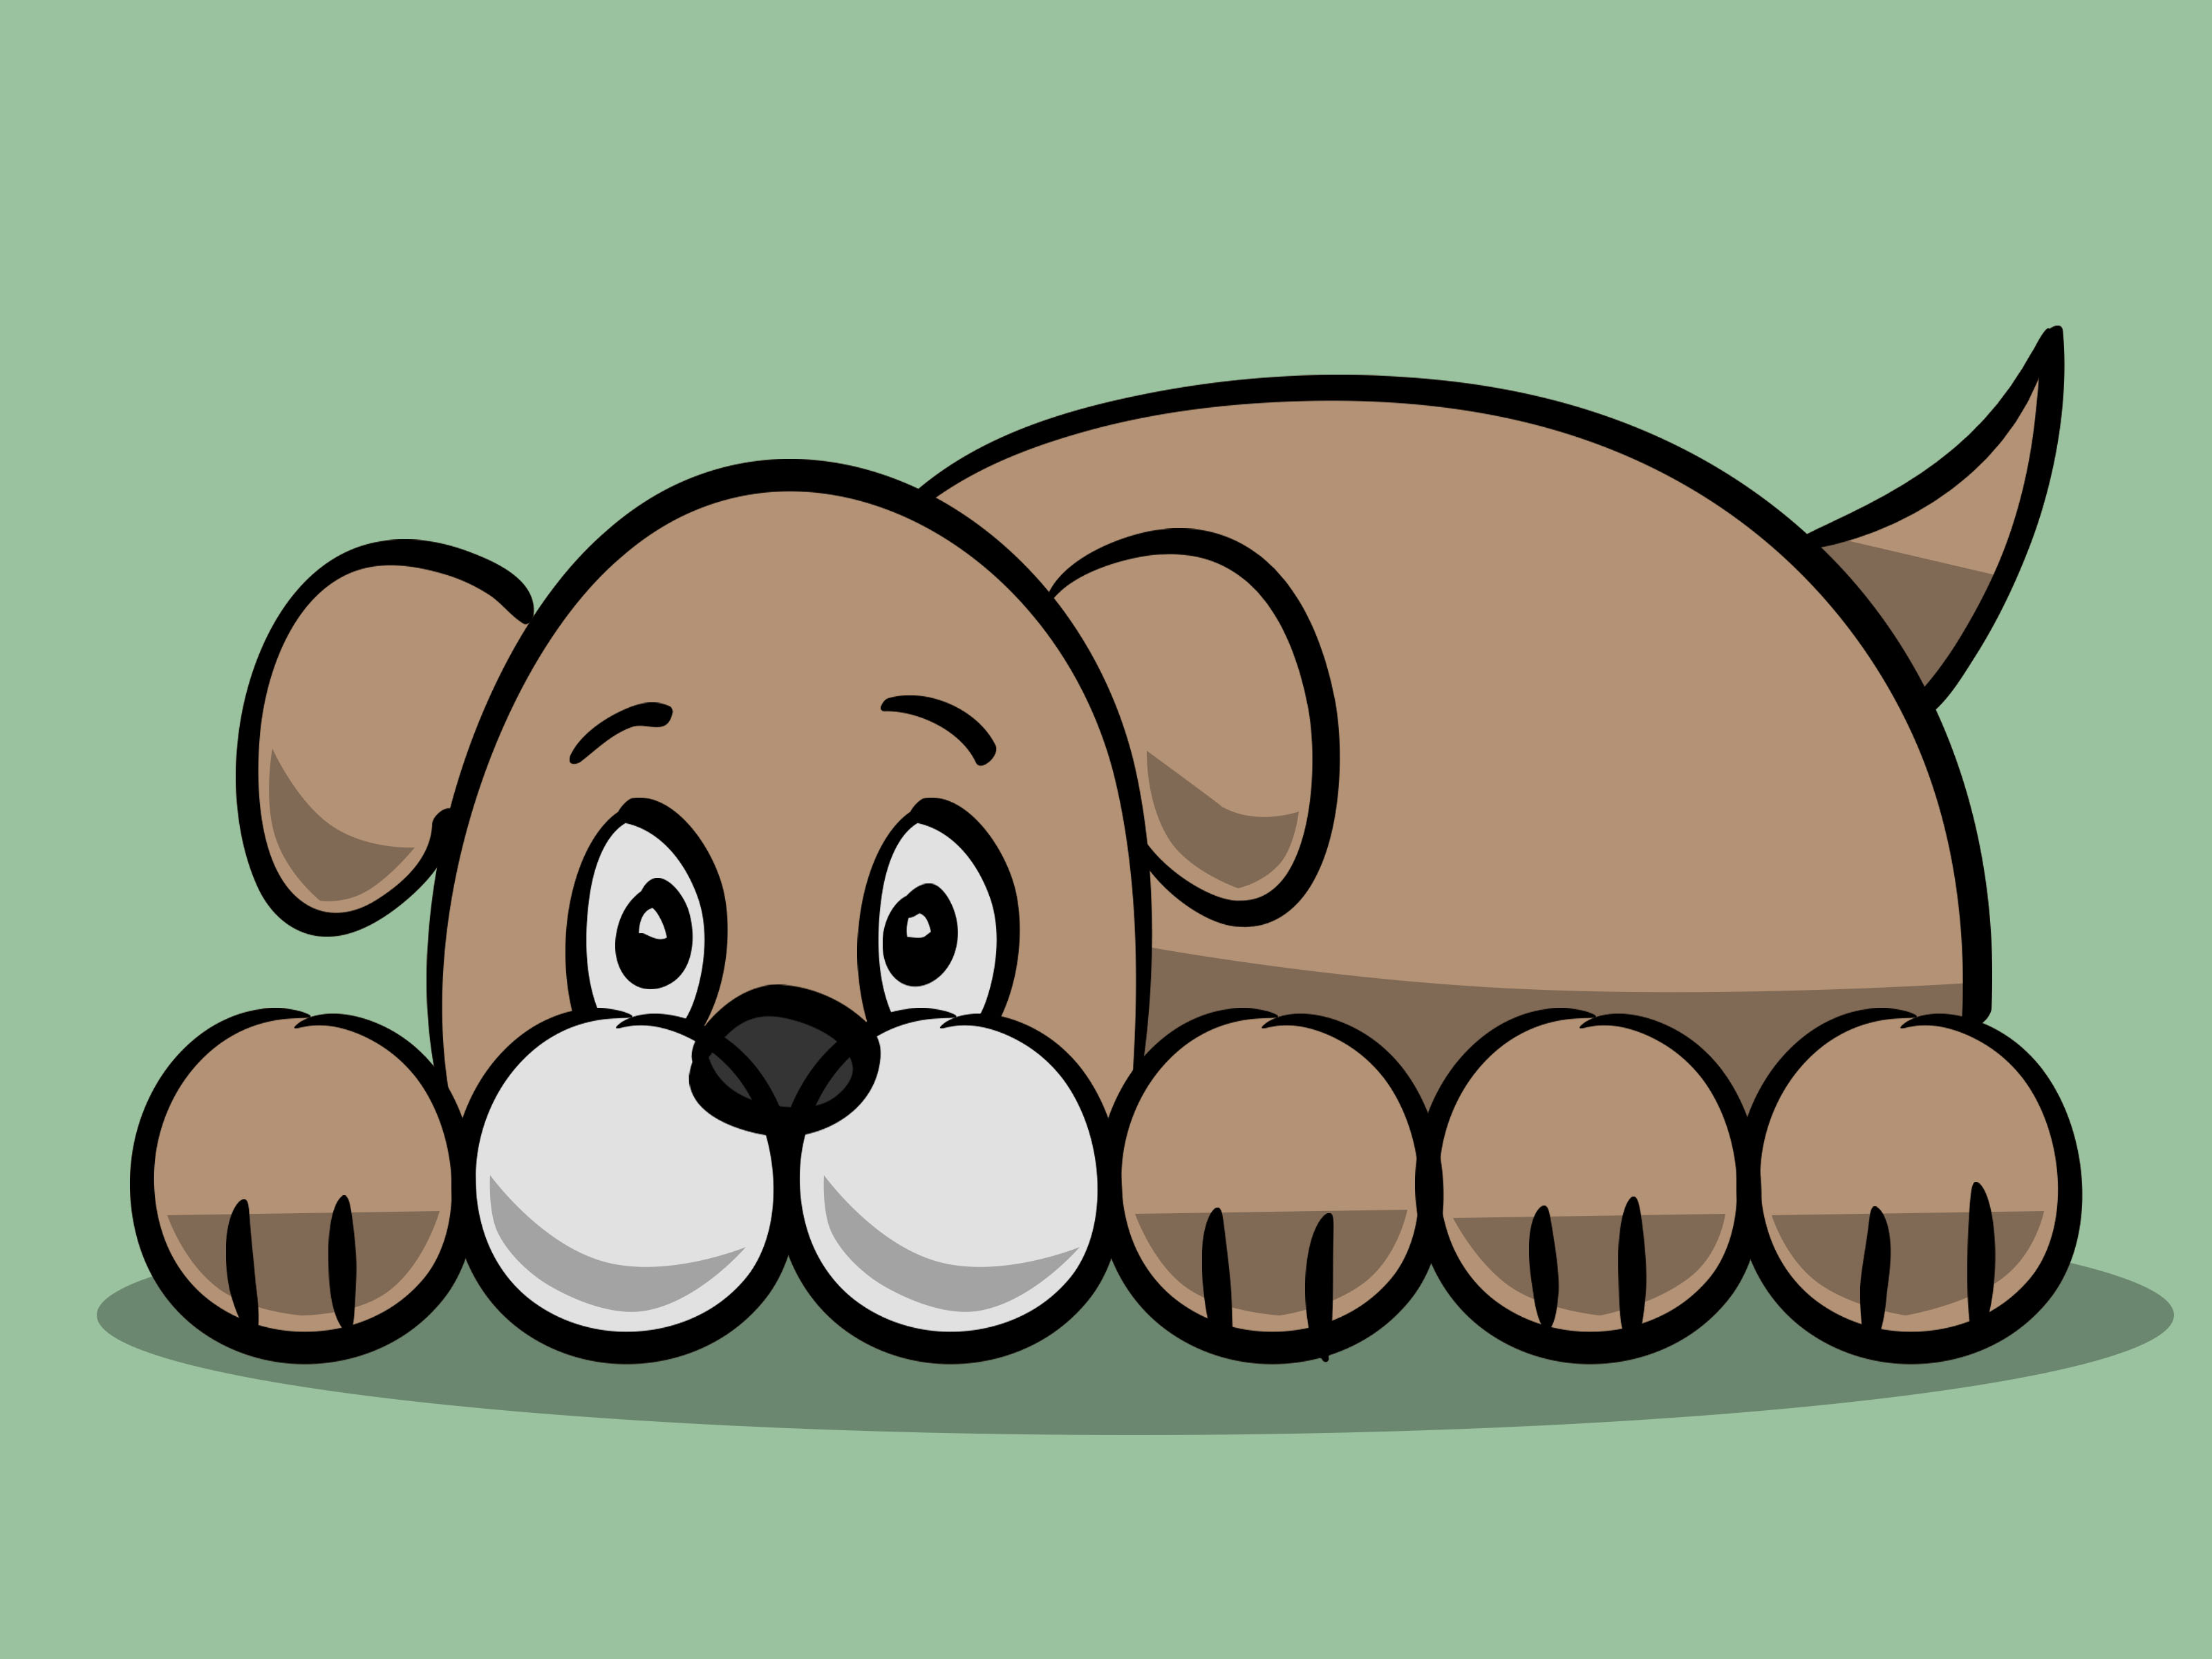 Dog clip art easy. How to draw a